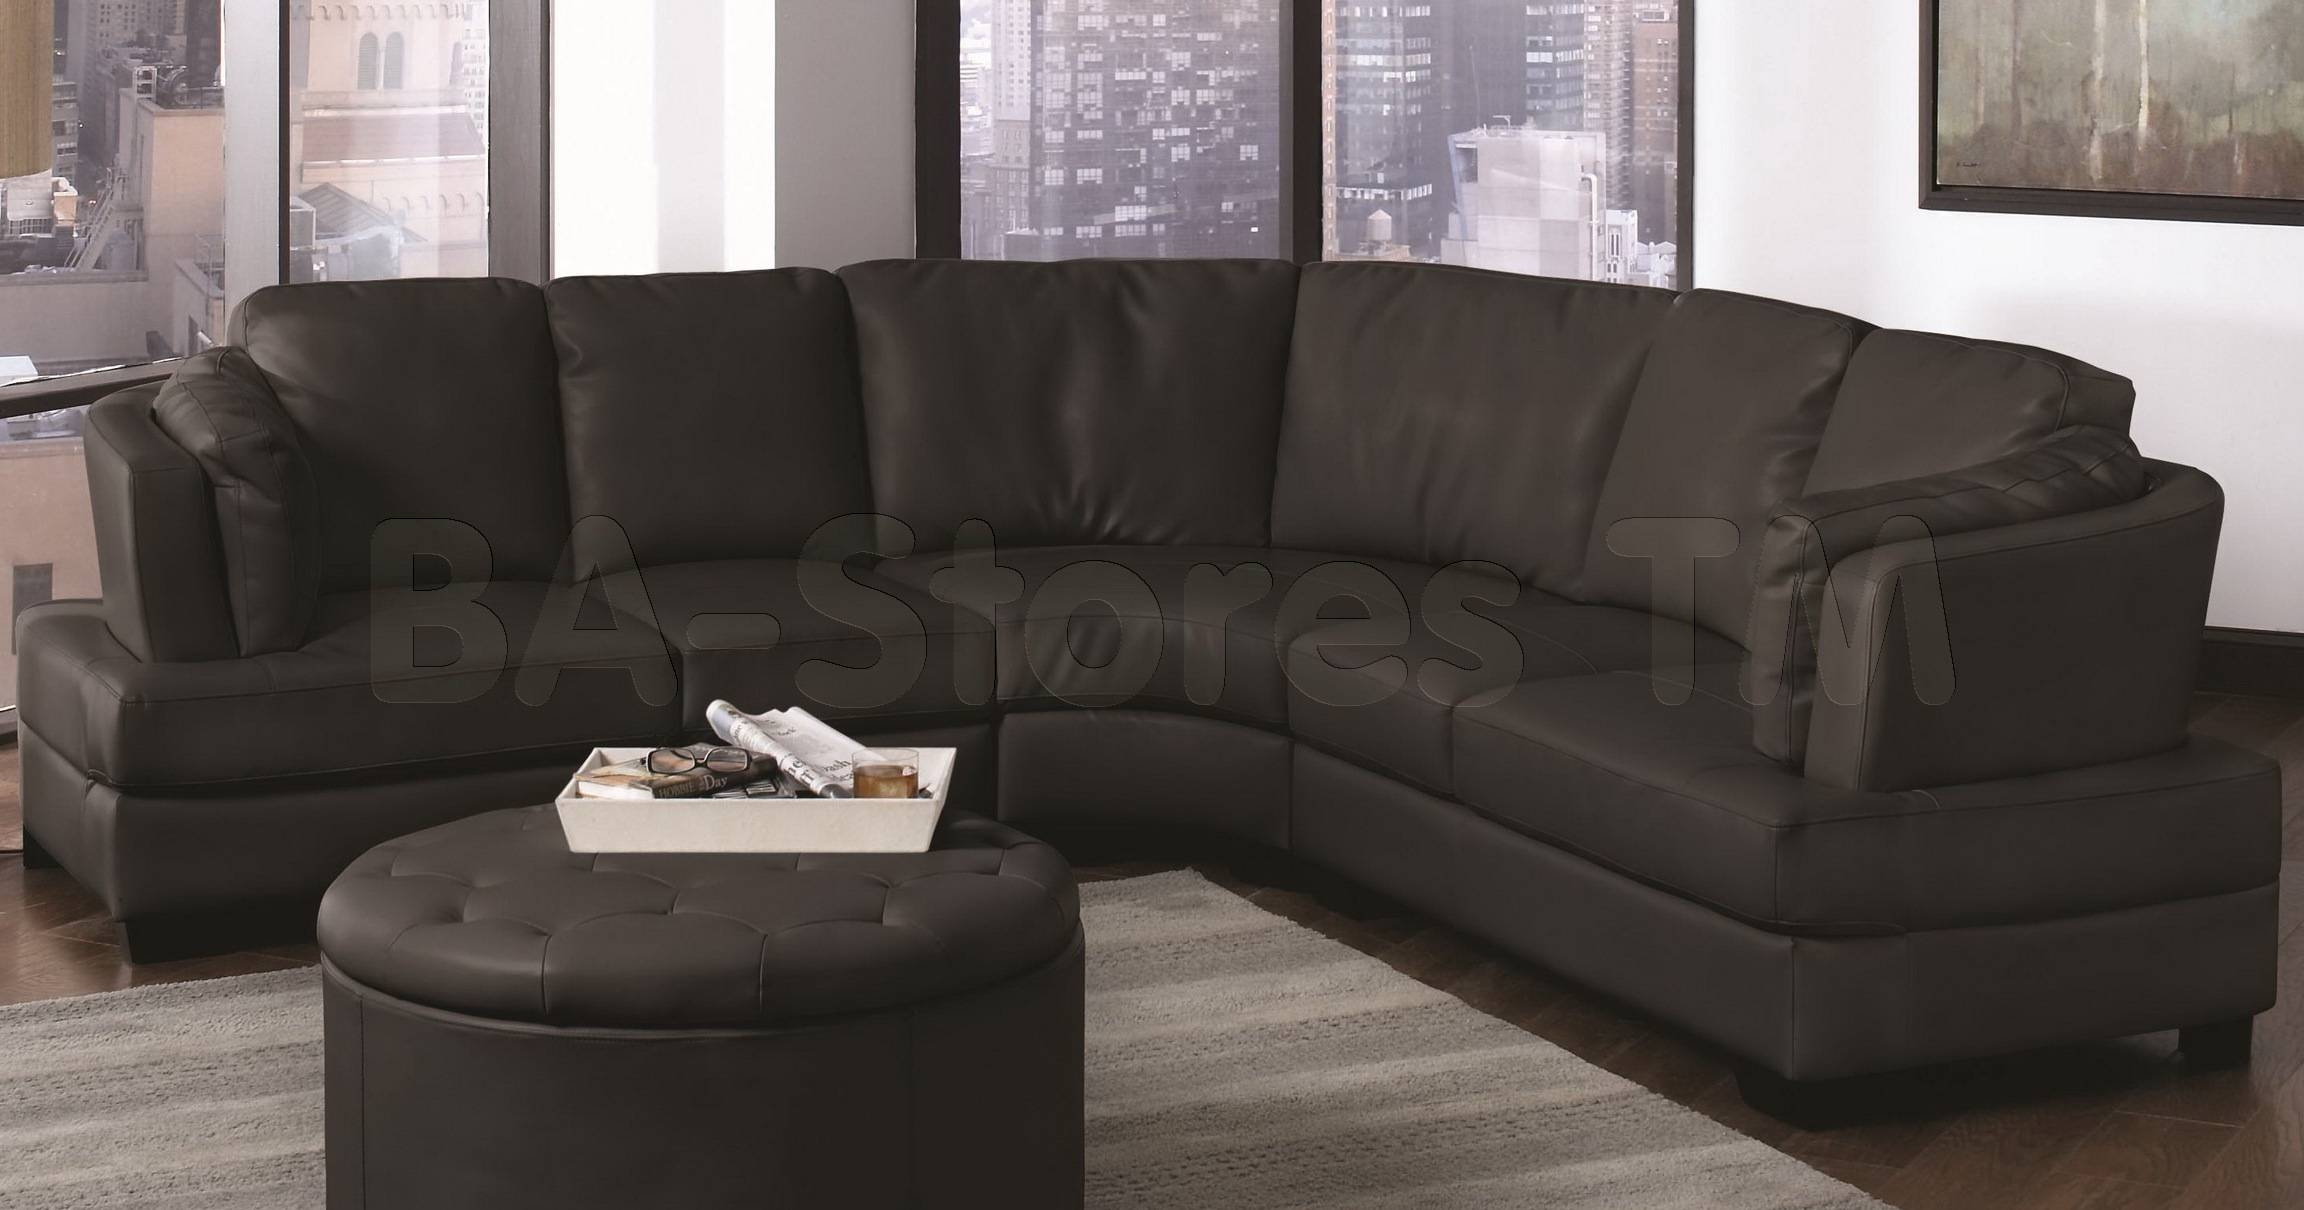 Circular Sectional Sofa Circle | Tehranmix Decoration intended for Circle Sectional Sofa (Image 2 of 30)